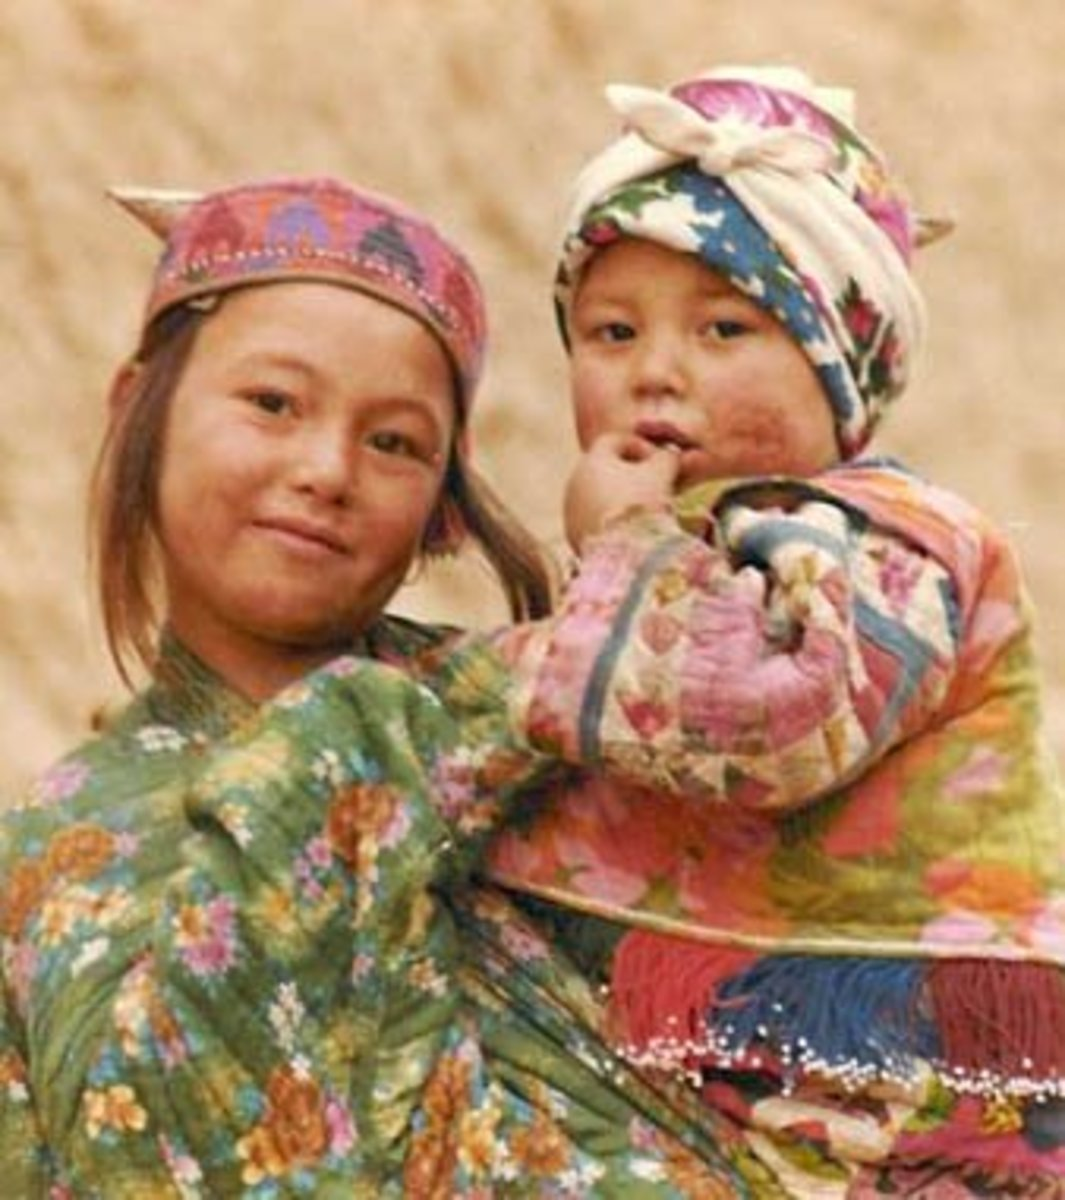 Turkmen Children in Afghanistan